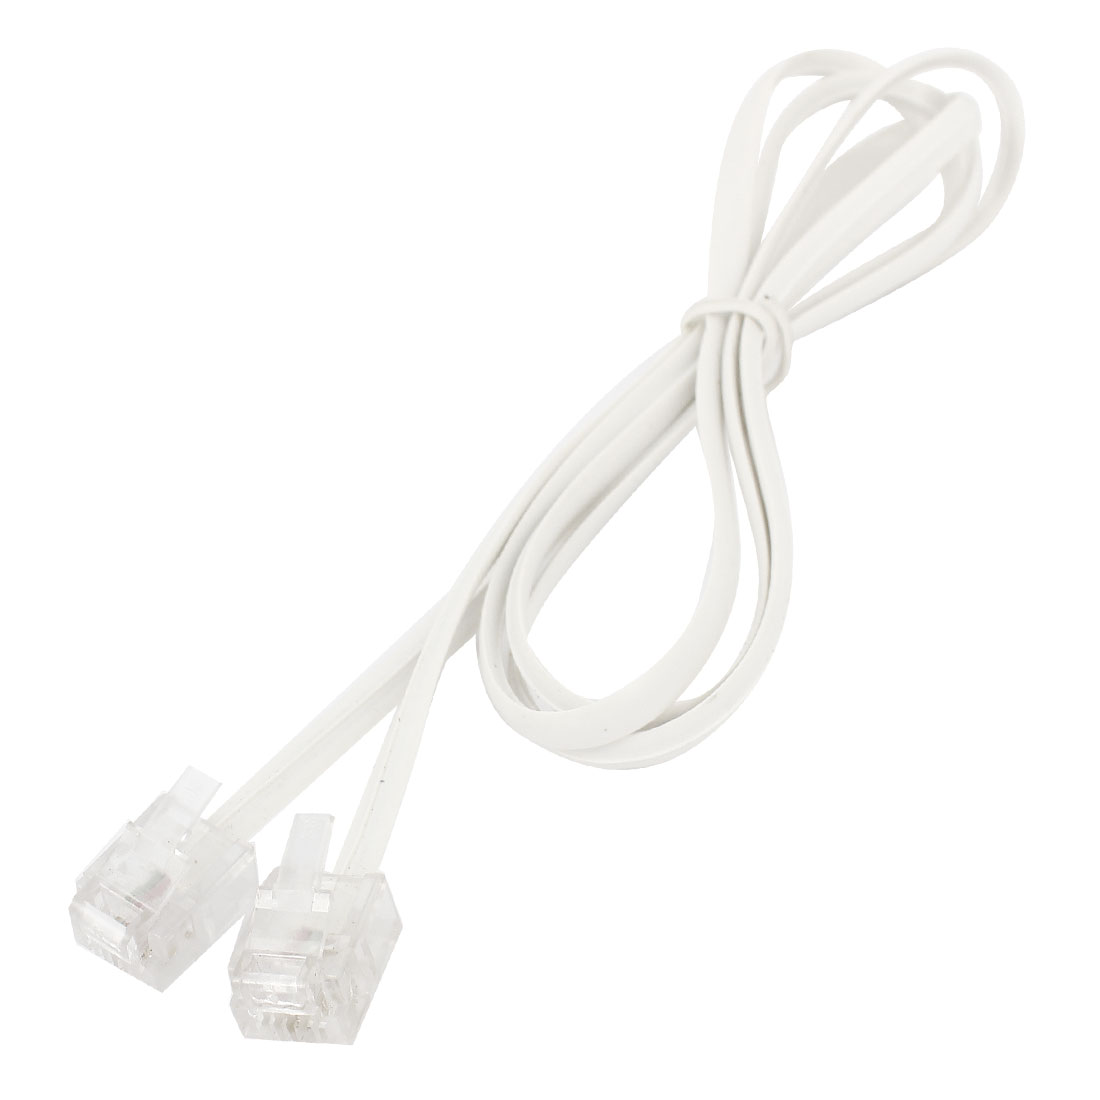 White 6P2C RJ11 M/M 4mm Width Telephone Straight Line Cable Cord Lead 6.6Ft